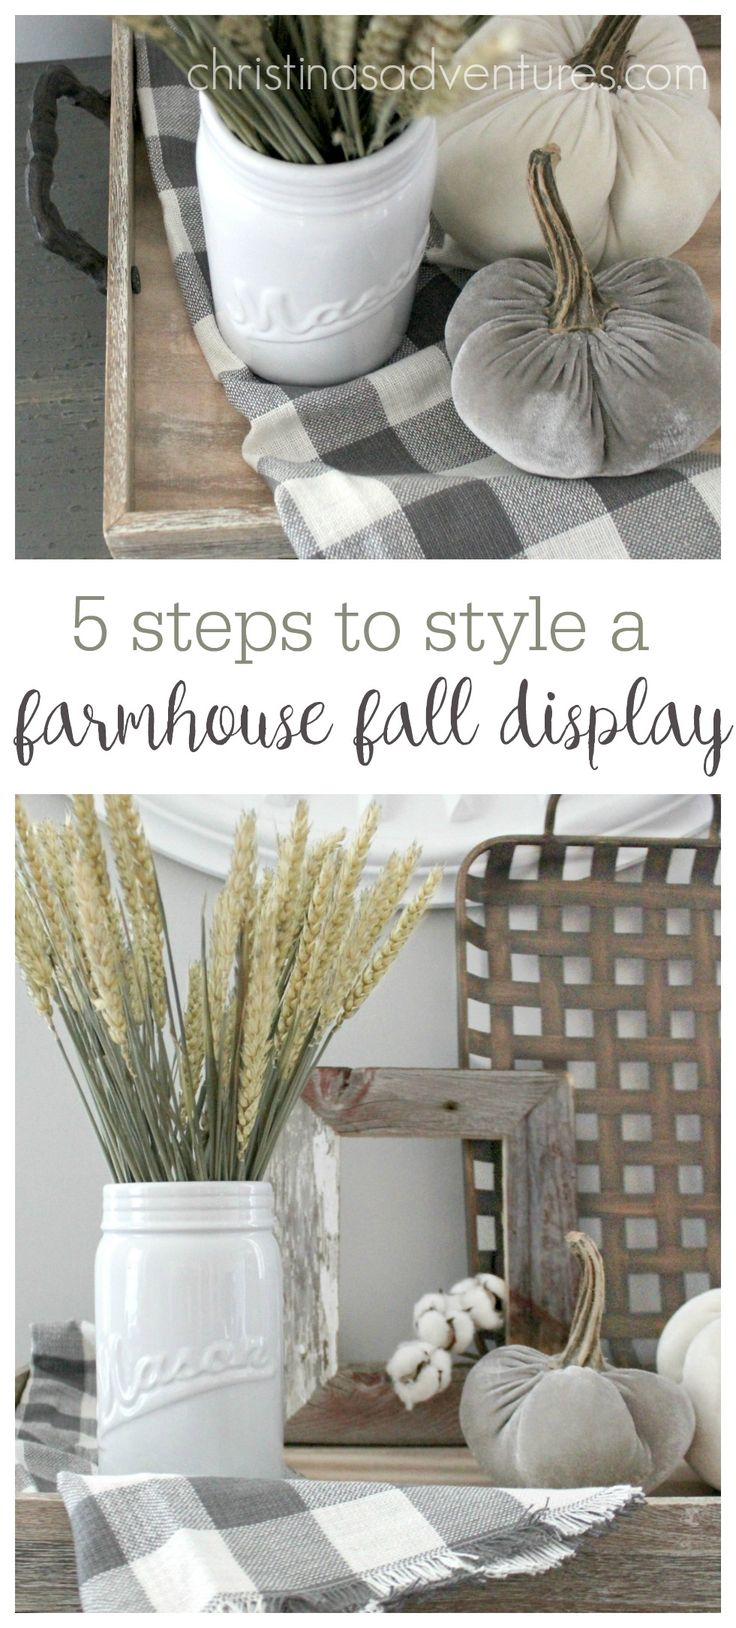 great simple tips to style a farmhouse fall display!